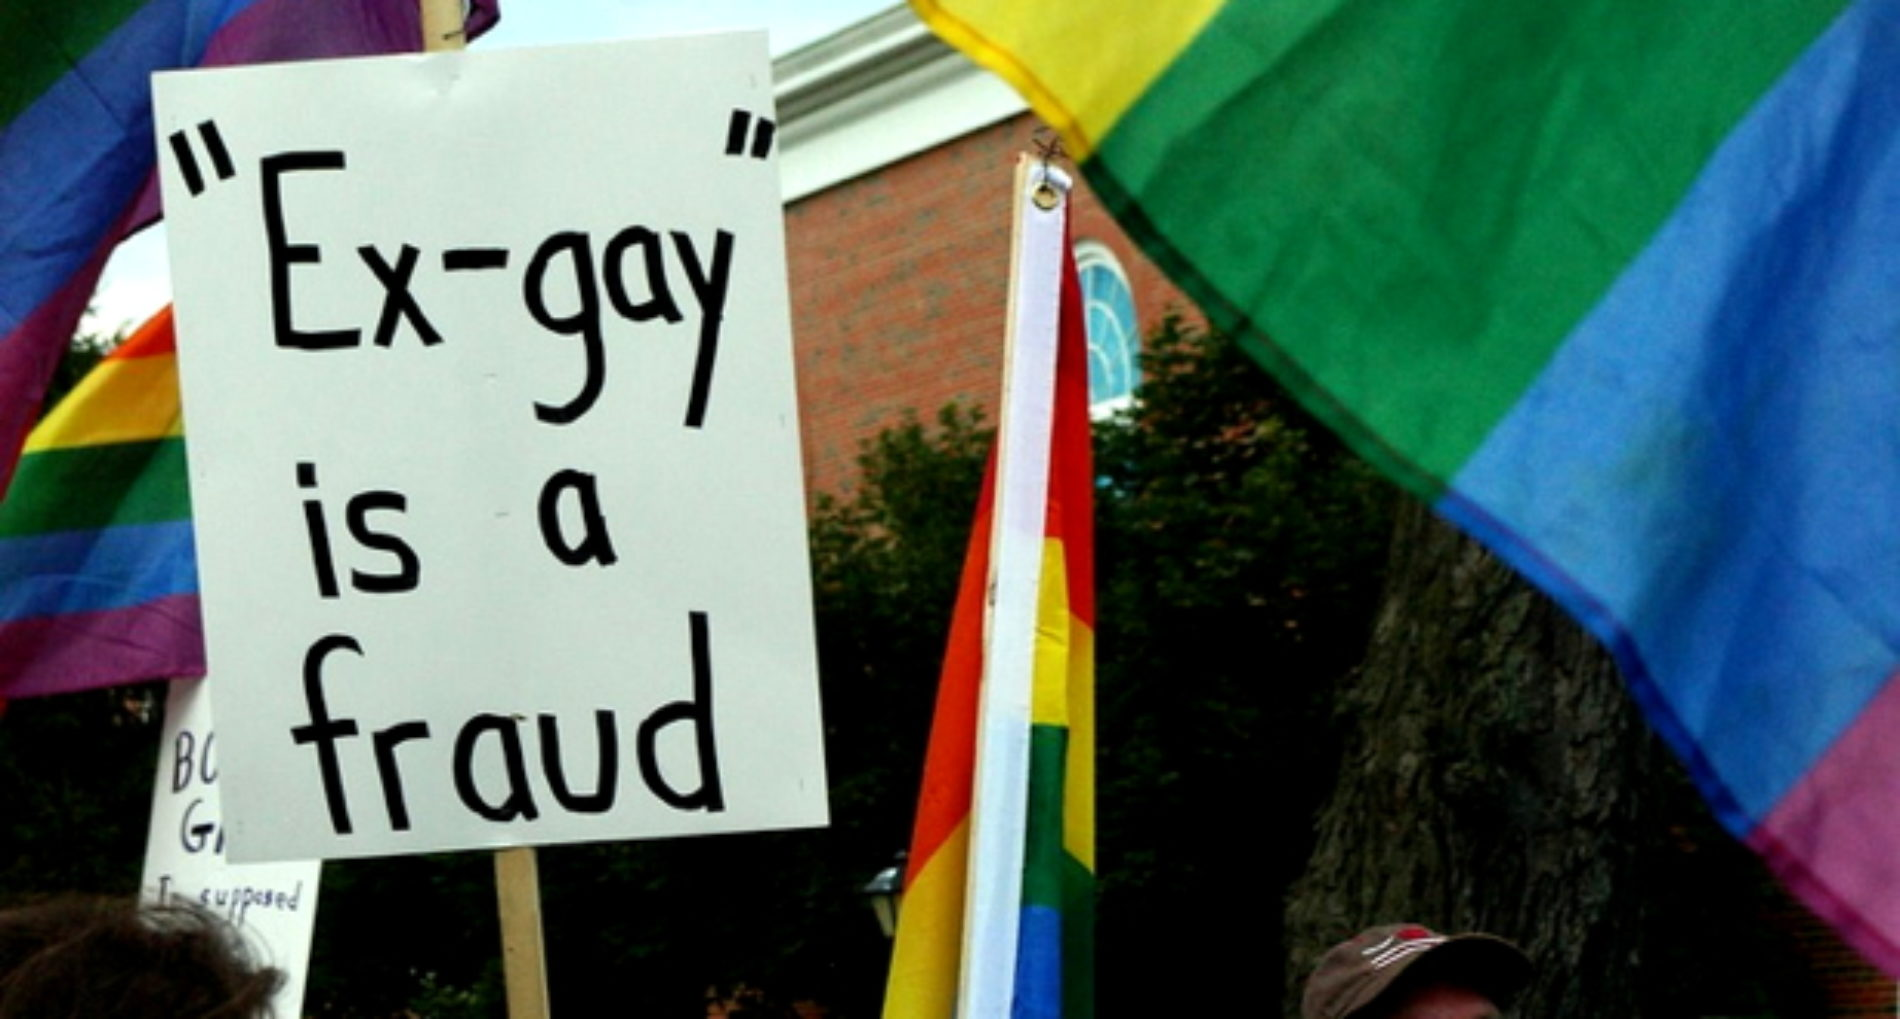 Former members of the Gay Conversion Therapy Movement Apologize